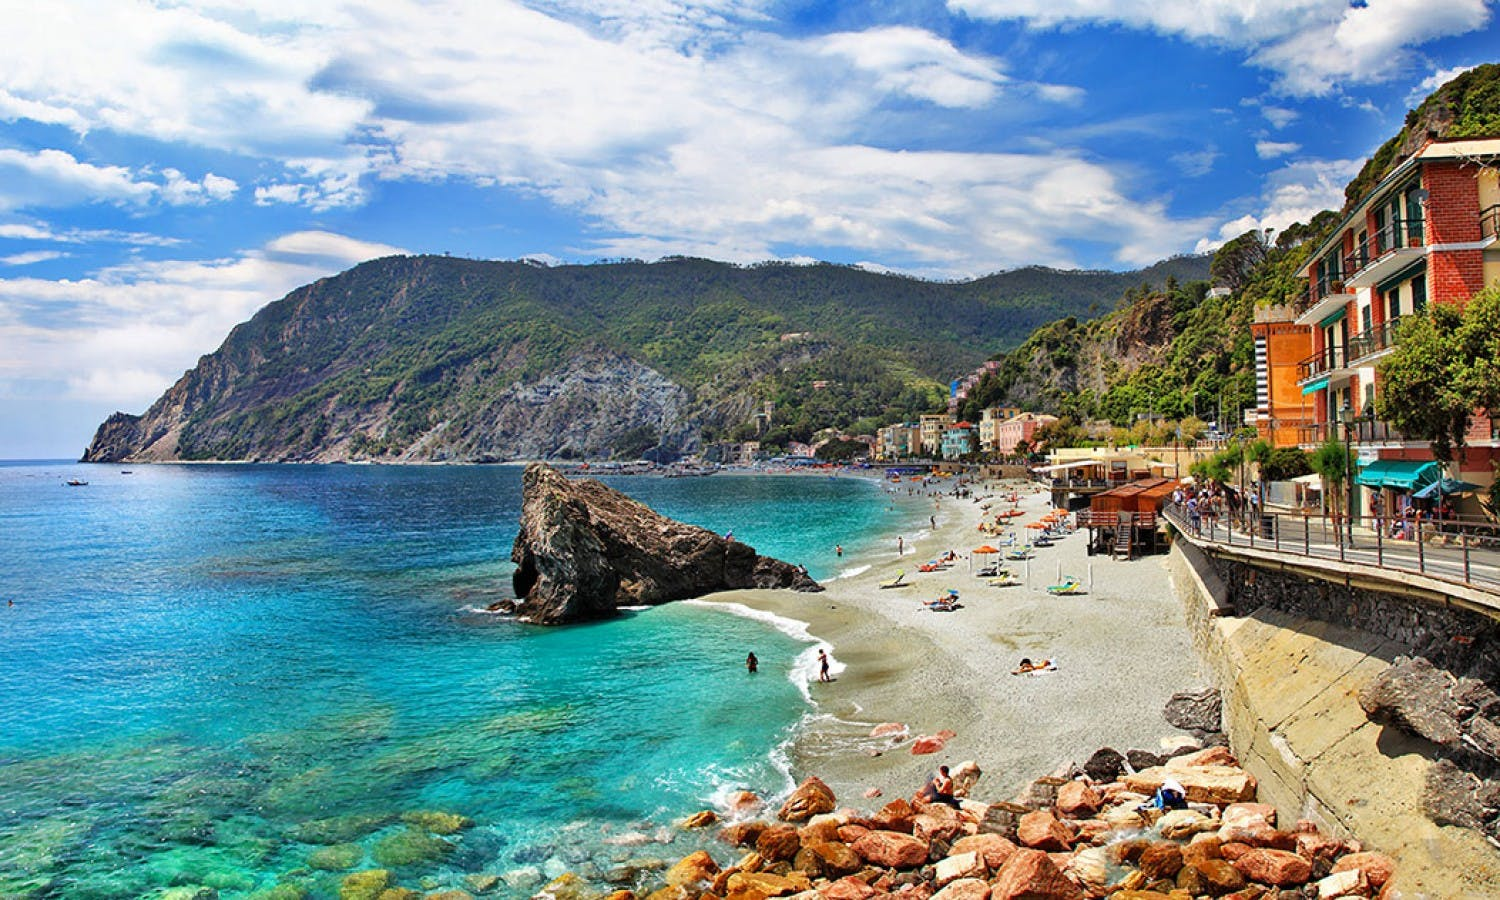 Cinque Terre Day Tour with Limoncino Tasting